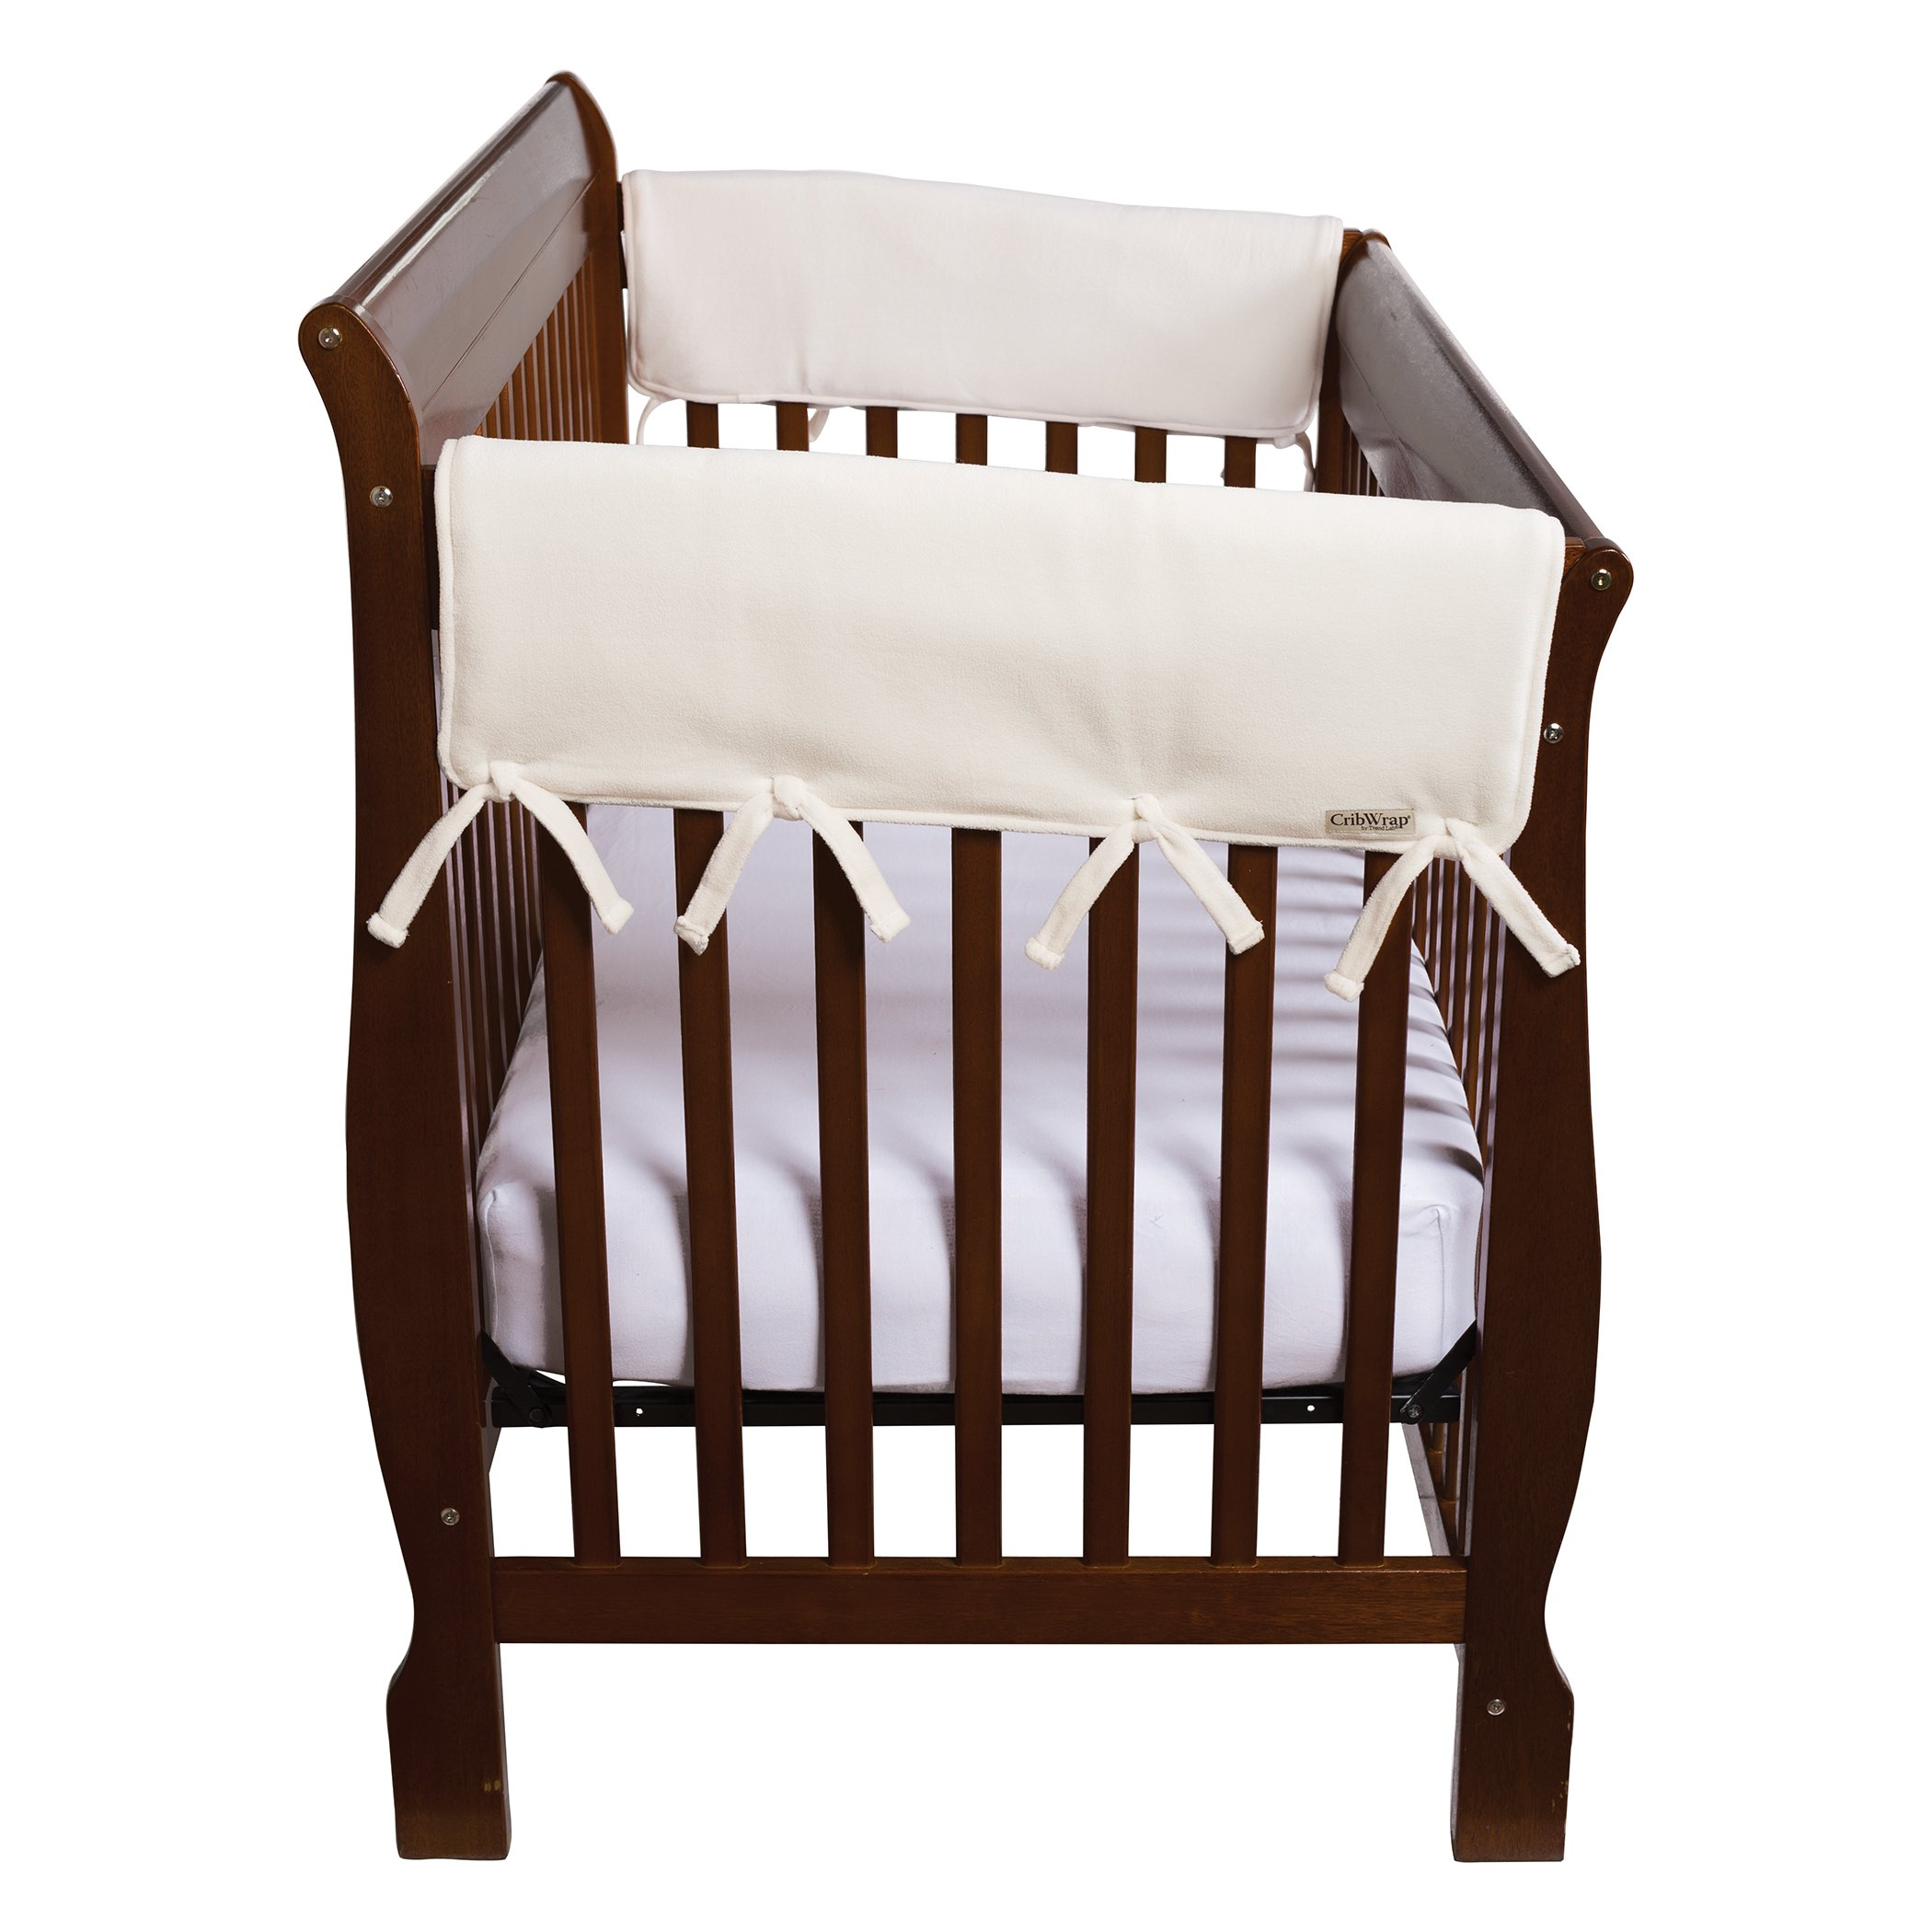 Trend Lab Waterproof CribWrap Rail Cover - For Wide Side Crib Rails Made to Fit Rails up to 18'' Around, 2PK